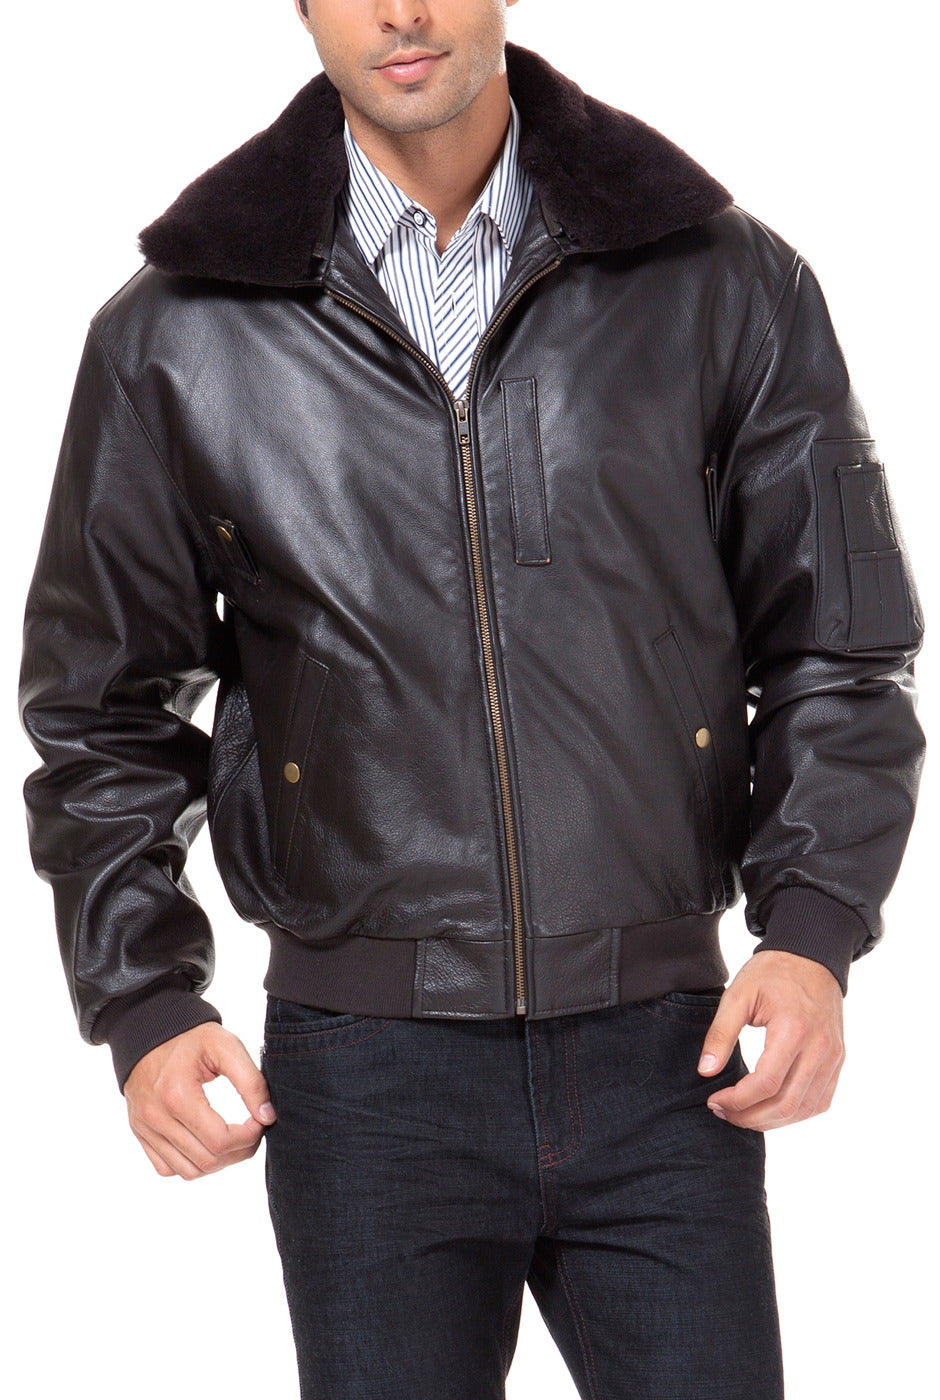 Landing Leathers Men's Air Force B-15 Cowhide Leather Flight Bomber Jacket - Tall